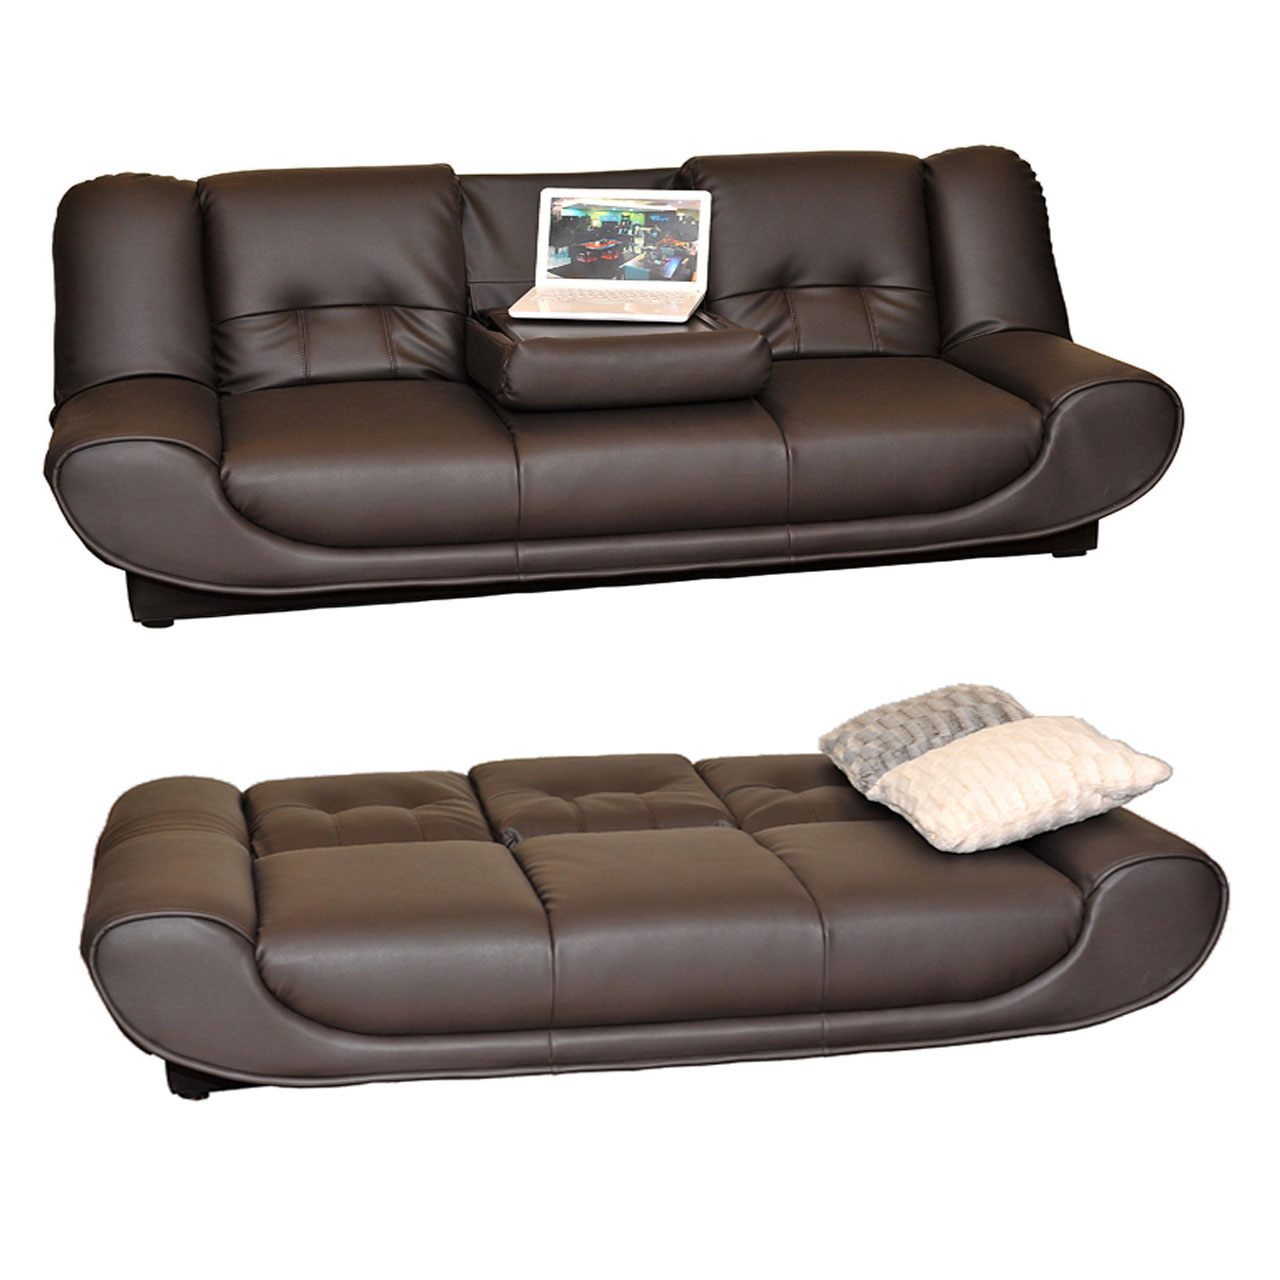 Sean Sofa Bed Furniture Store Manila Philippines Urban Concepts